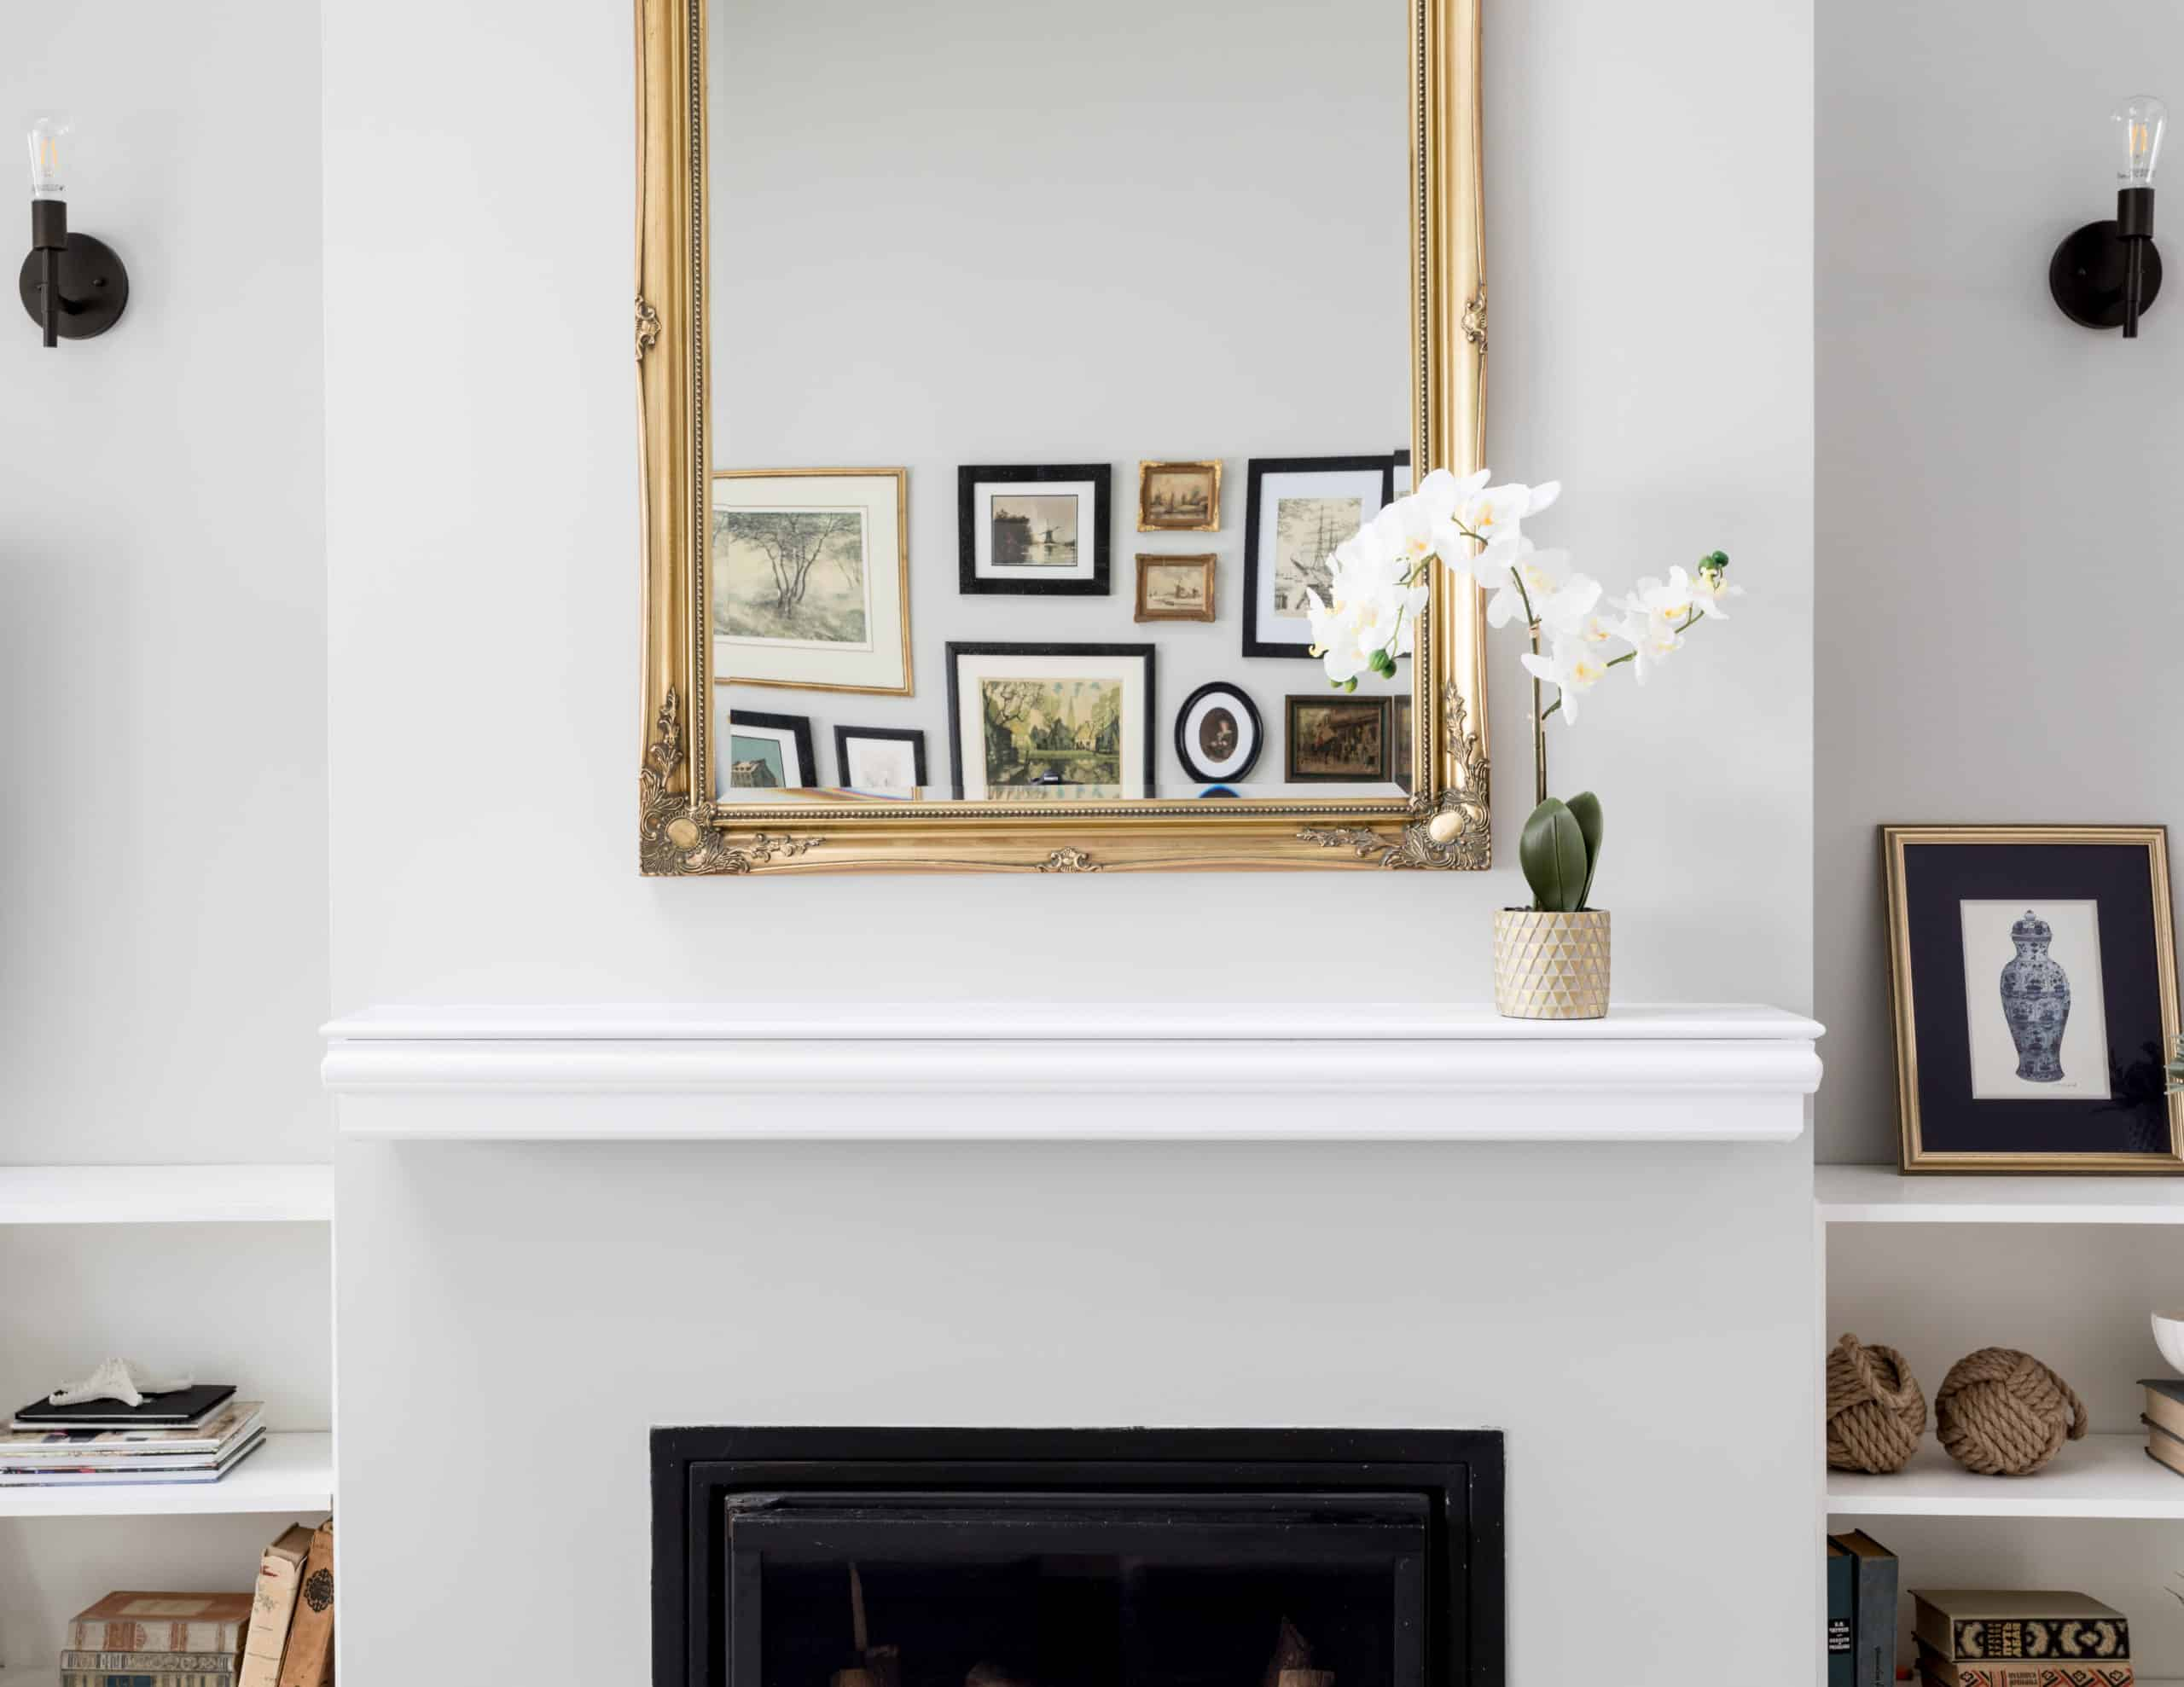 Mirror above the fireplace reflecting many pictures